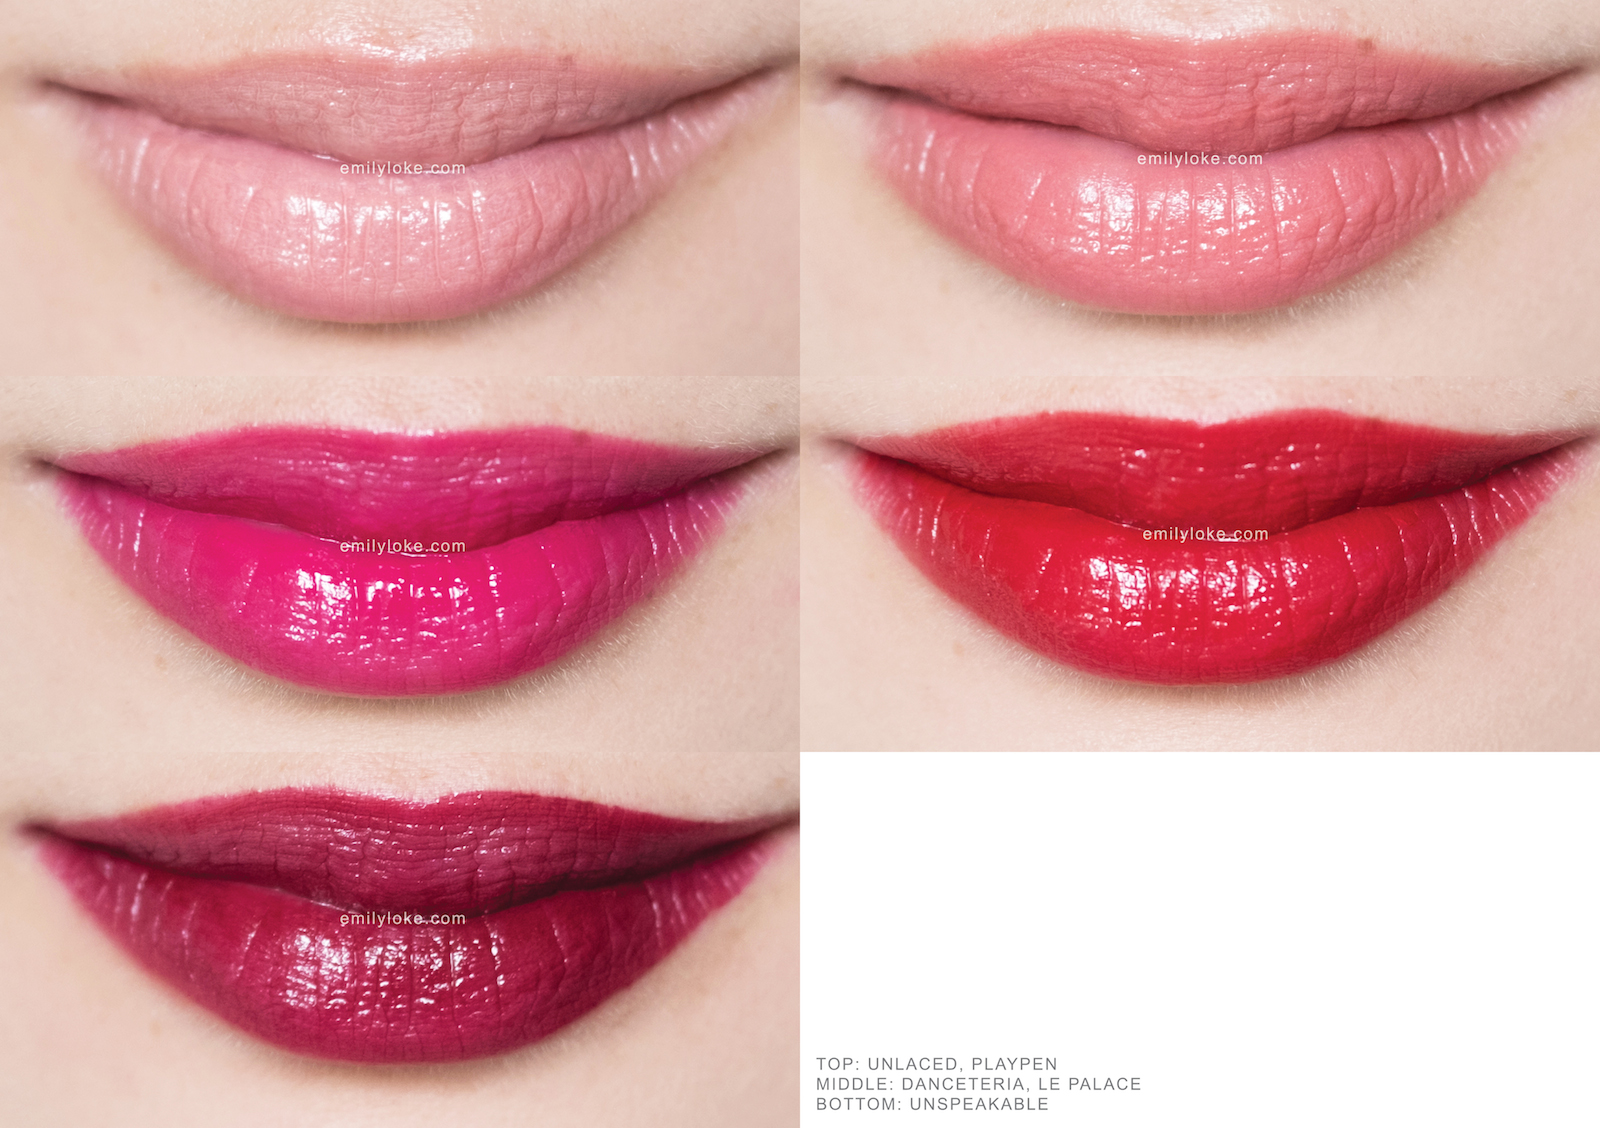 nars velvet lip glide swatches 1